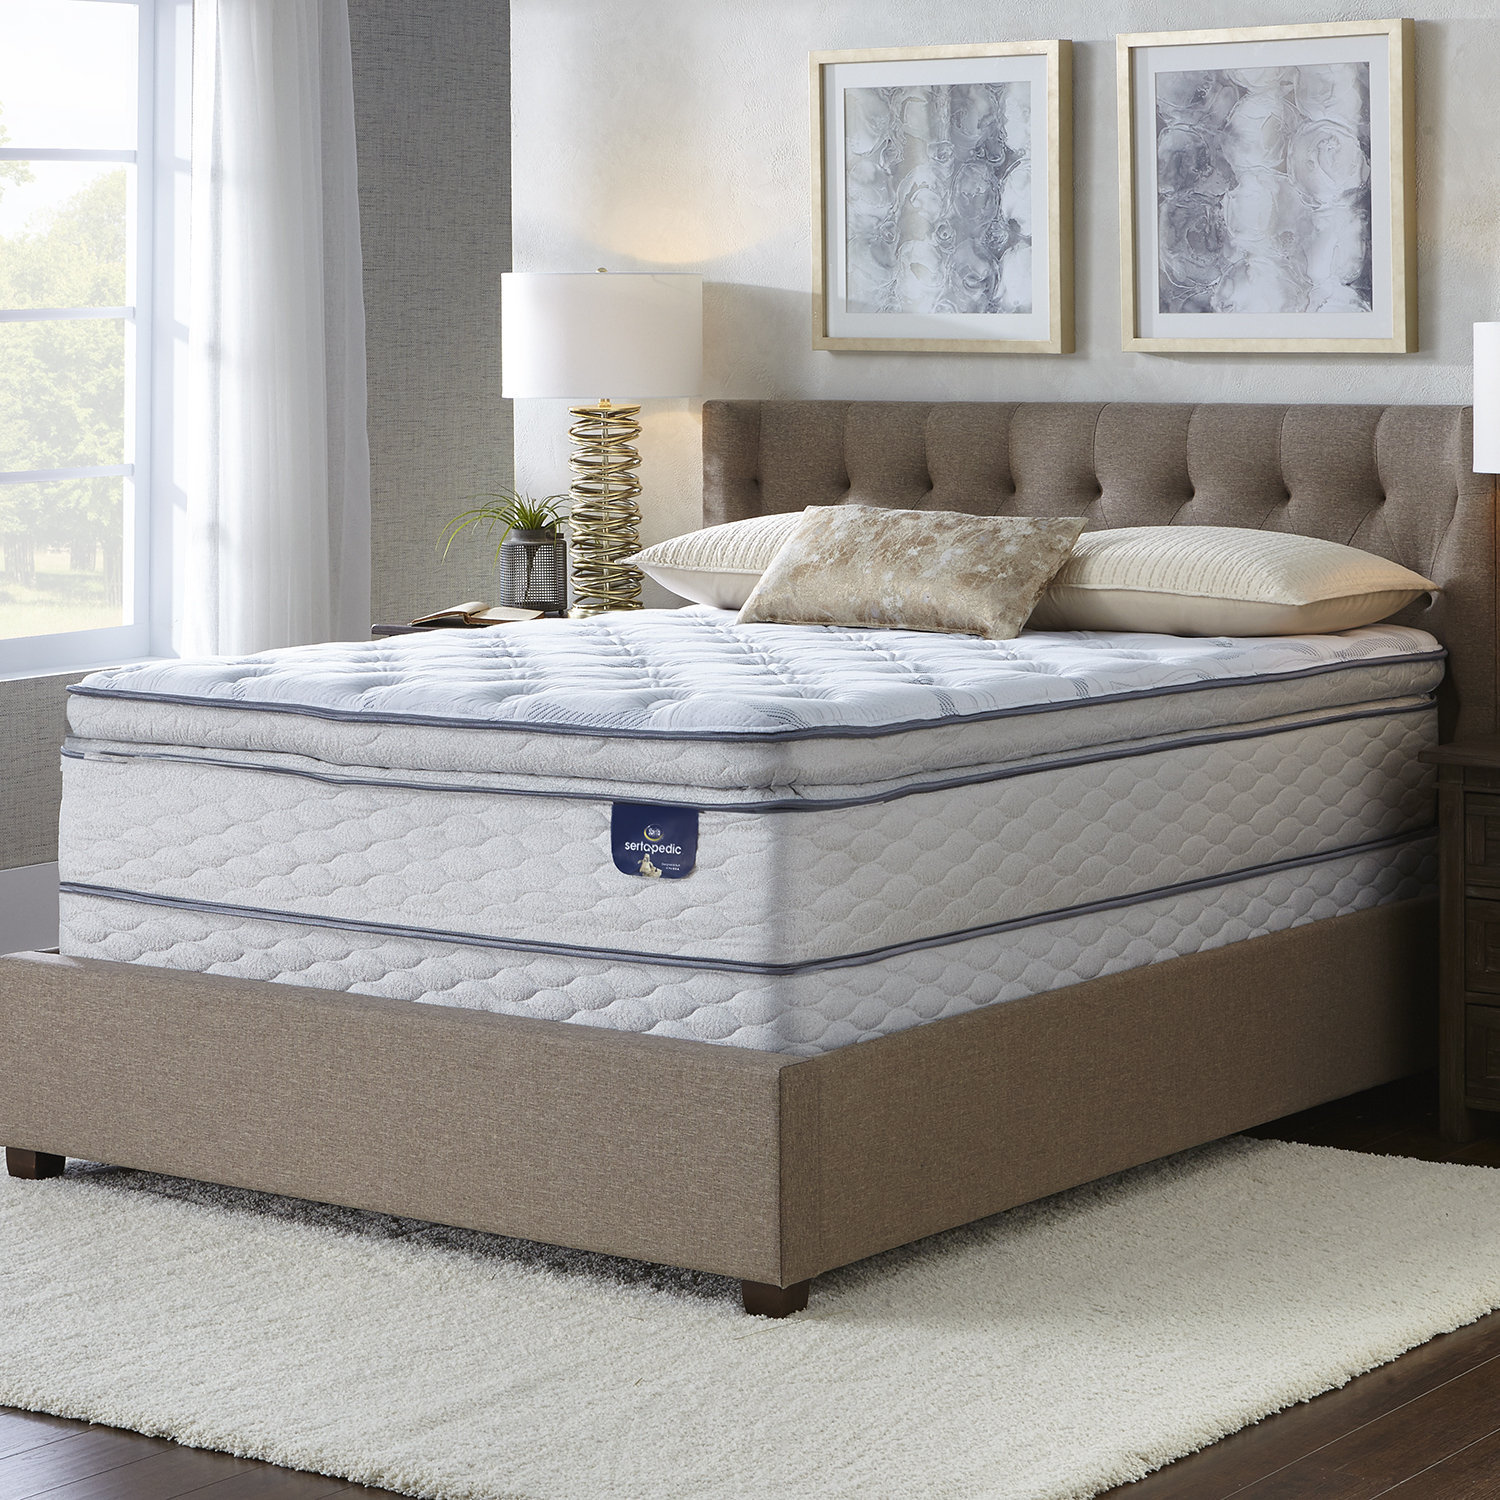 size today inch topper serta sleeper super perfect home free pillow top shipping overstock garden wayburn queen mattress pillowtop product